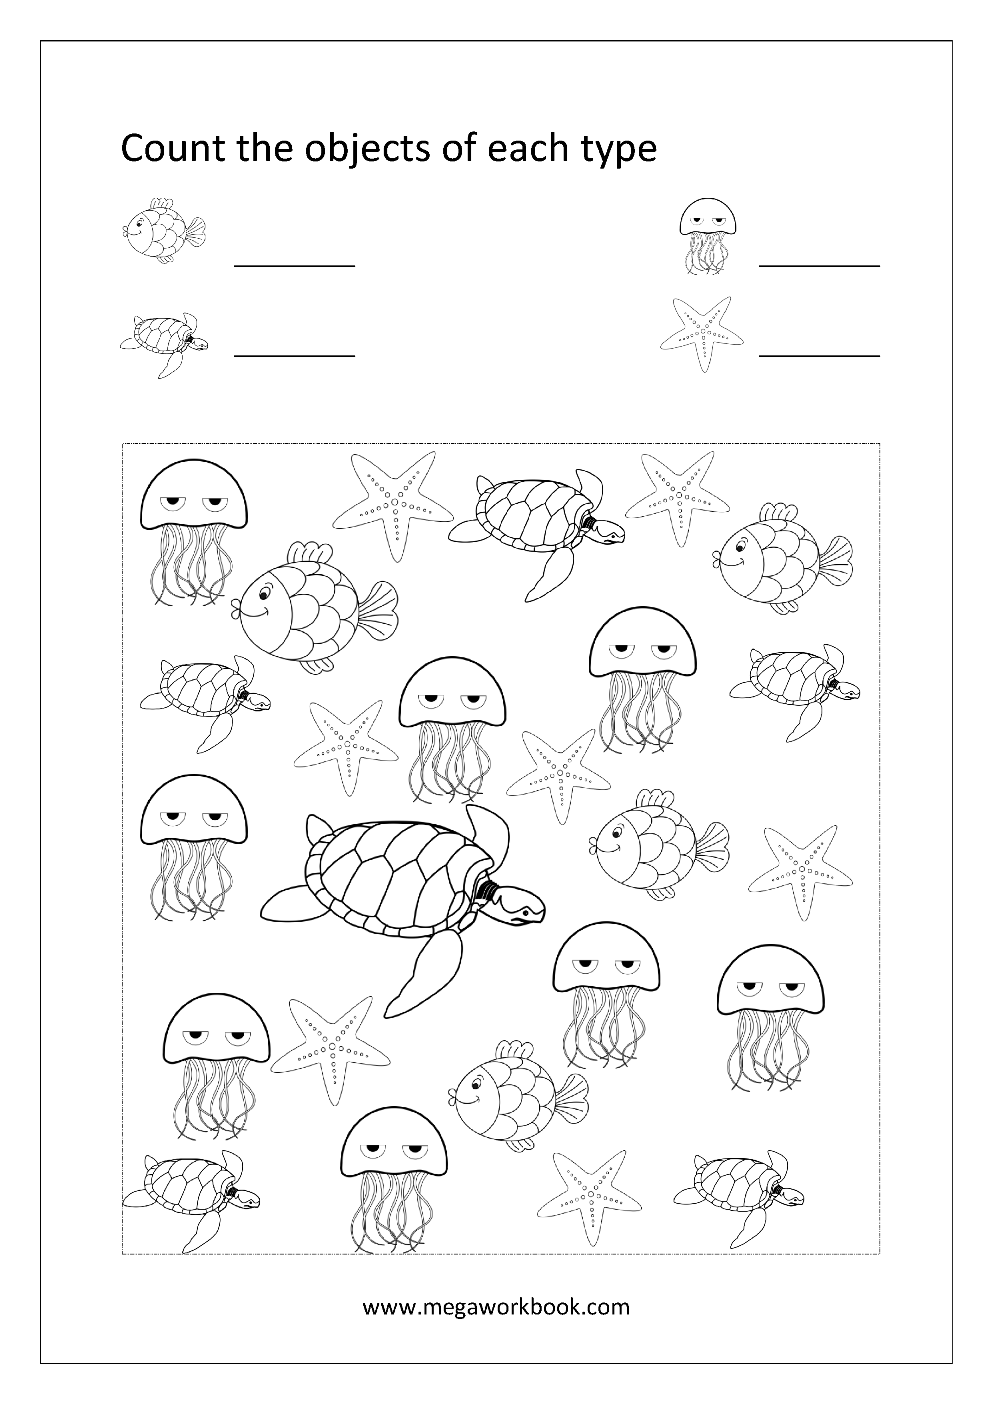 Free Printable Matching Worksheets For Kids Animals To Their Home Worksheet Crafts And X furthermore Xkindergarten Math Printable Worksheets   Pagespeed Ic Ljydkvfwpa moreover Count And Color The Correct Number Of Objects moreover Count Object Of Different Types furthermore Countmix P. on matching worksheet 1 kids maths kindergarten worksheets match the numbers